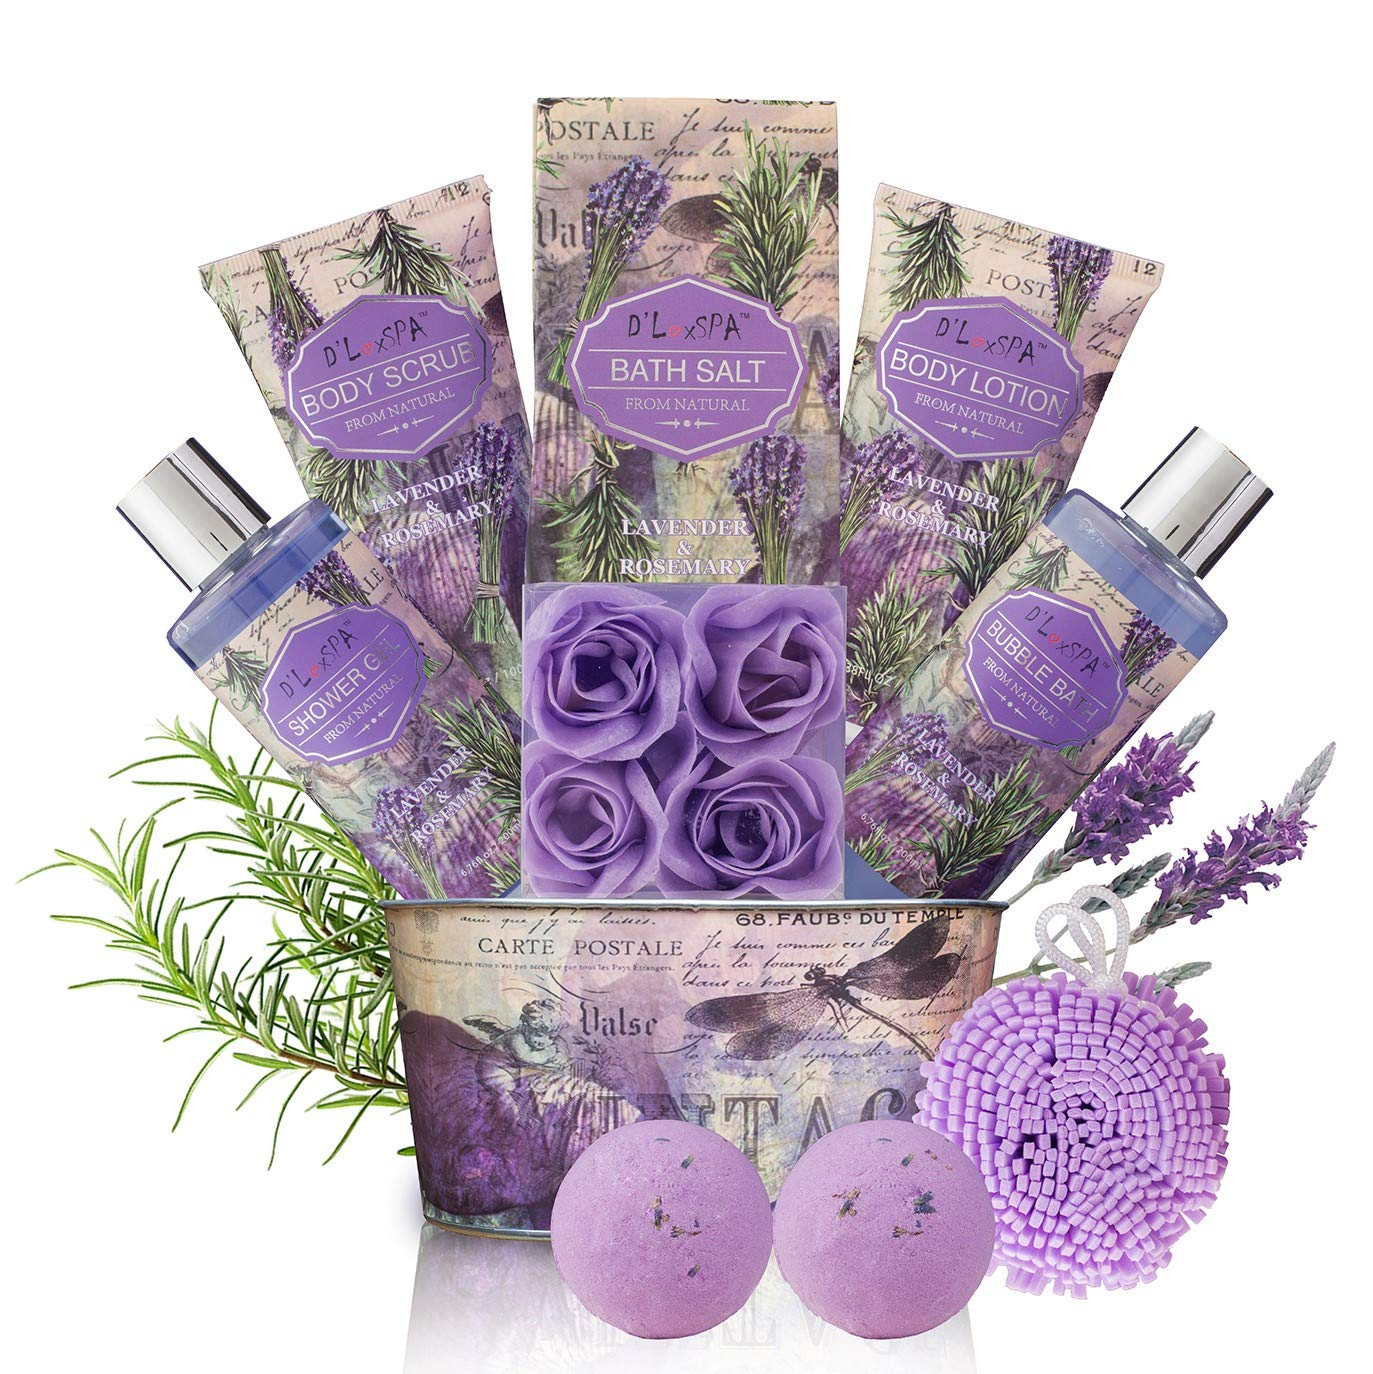 Relaxing Bath Gift Set for Women - Lavender and Rosemary Aromatherapy Basket at Home Spa Kit - Mothers day Birthday Holiday Gift Ideas for Mom - 13 Pack with Bubble Bath Bombs Show Gel Body Lotion by DLuxSpa